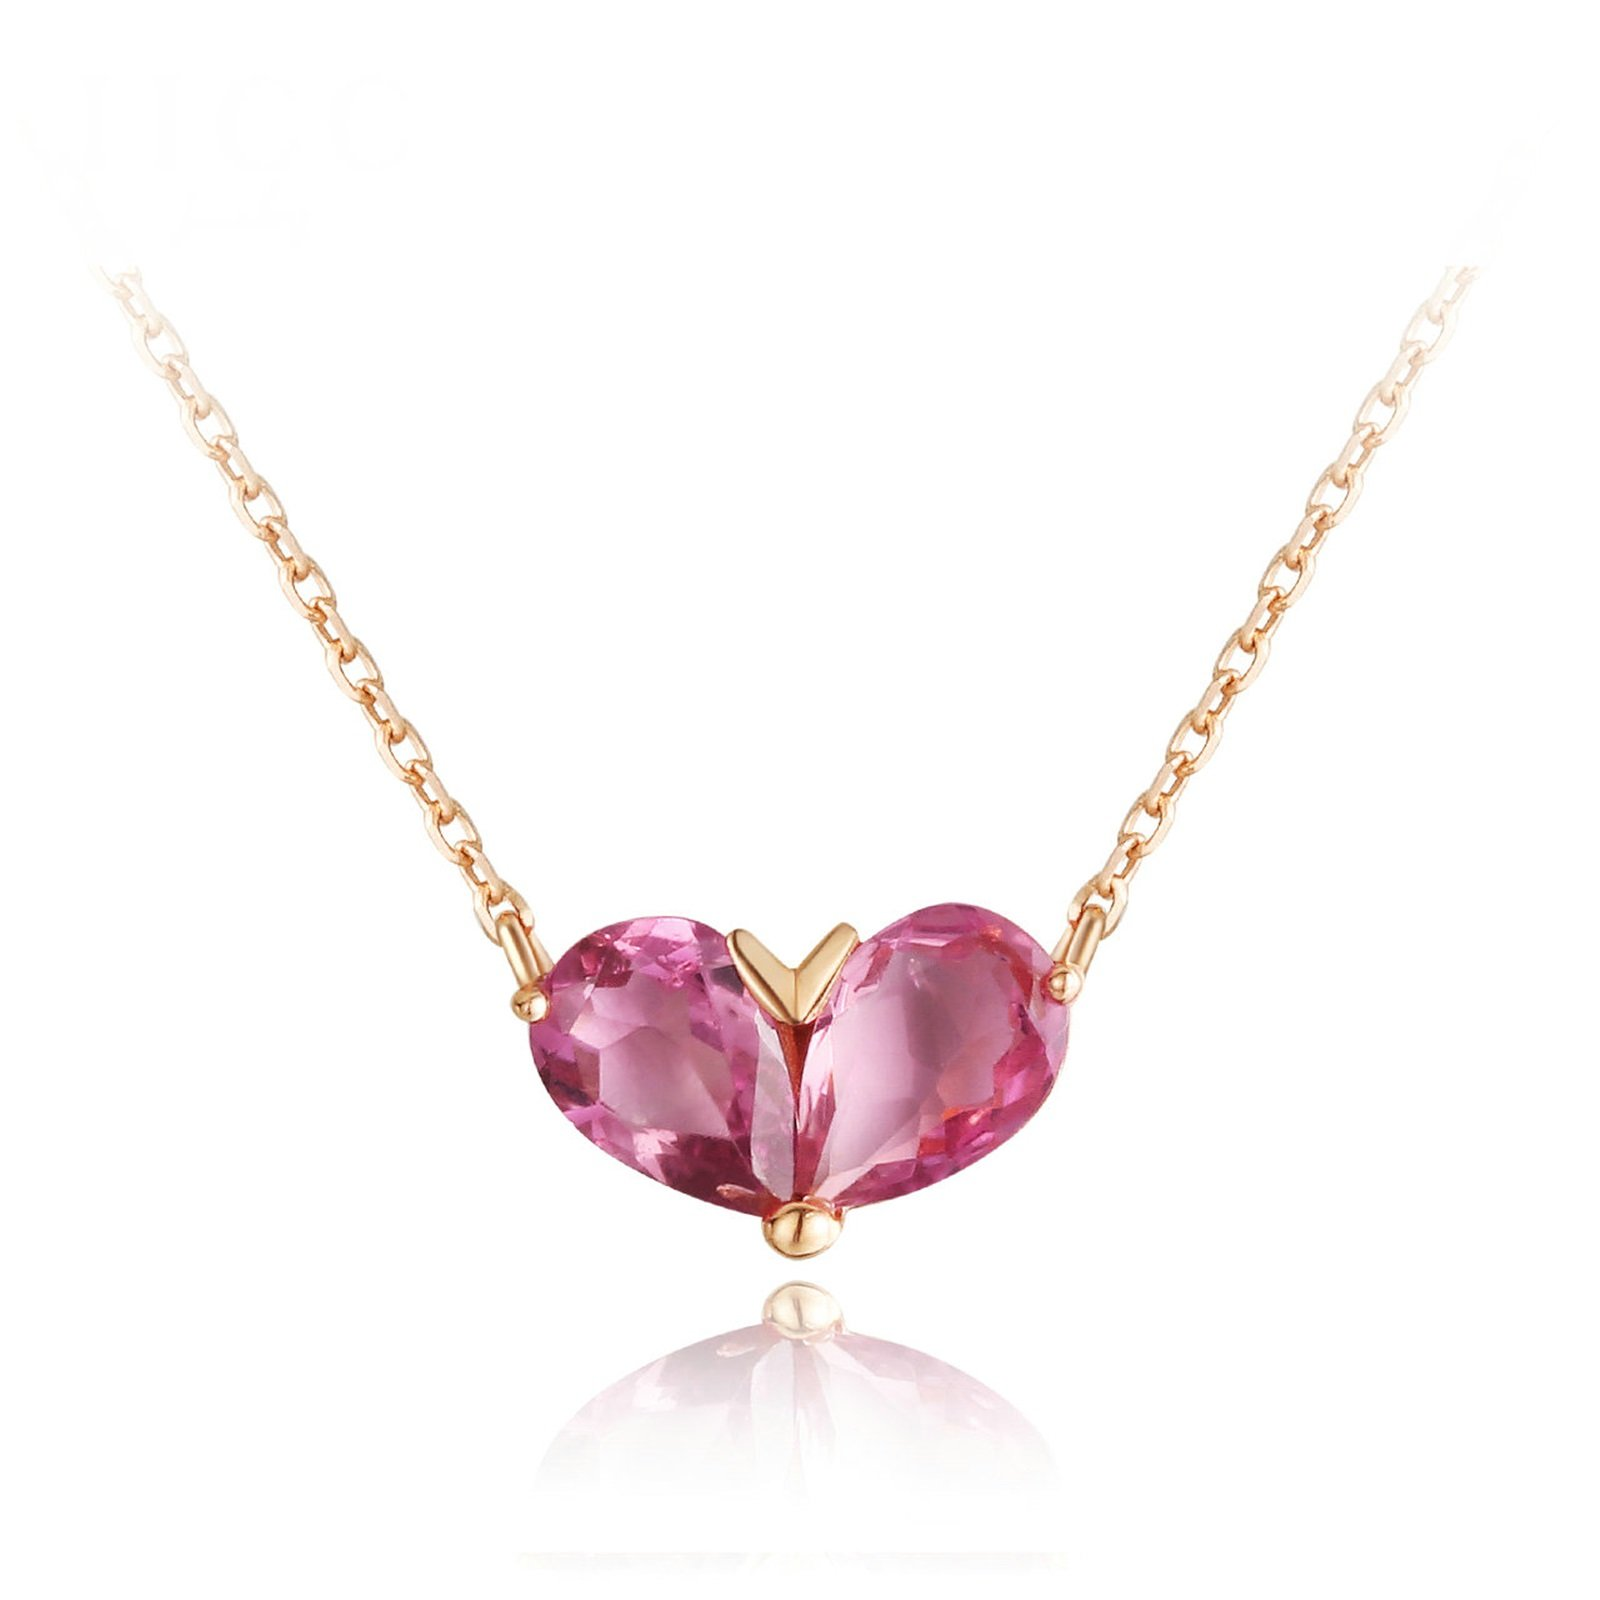 Daesar 18K Gold Necklace For Women Heart Water Drop Natural Red Tourmaline Necklace Chain Length: 40CM